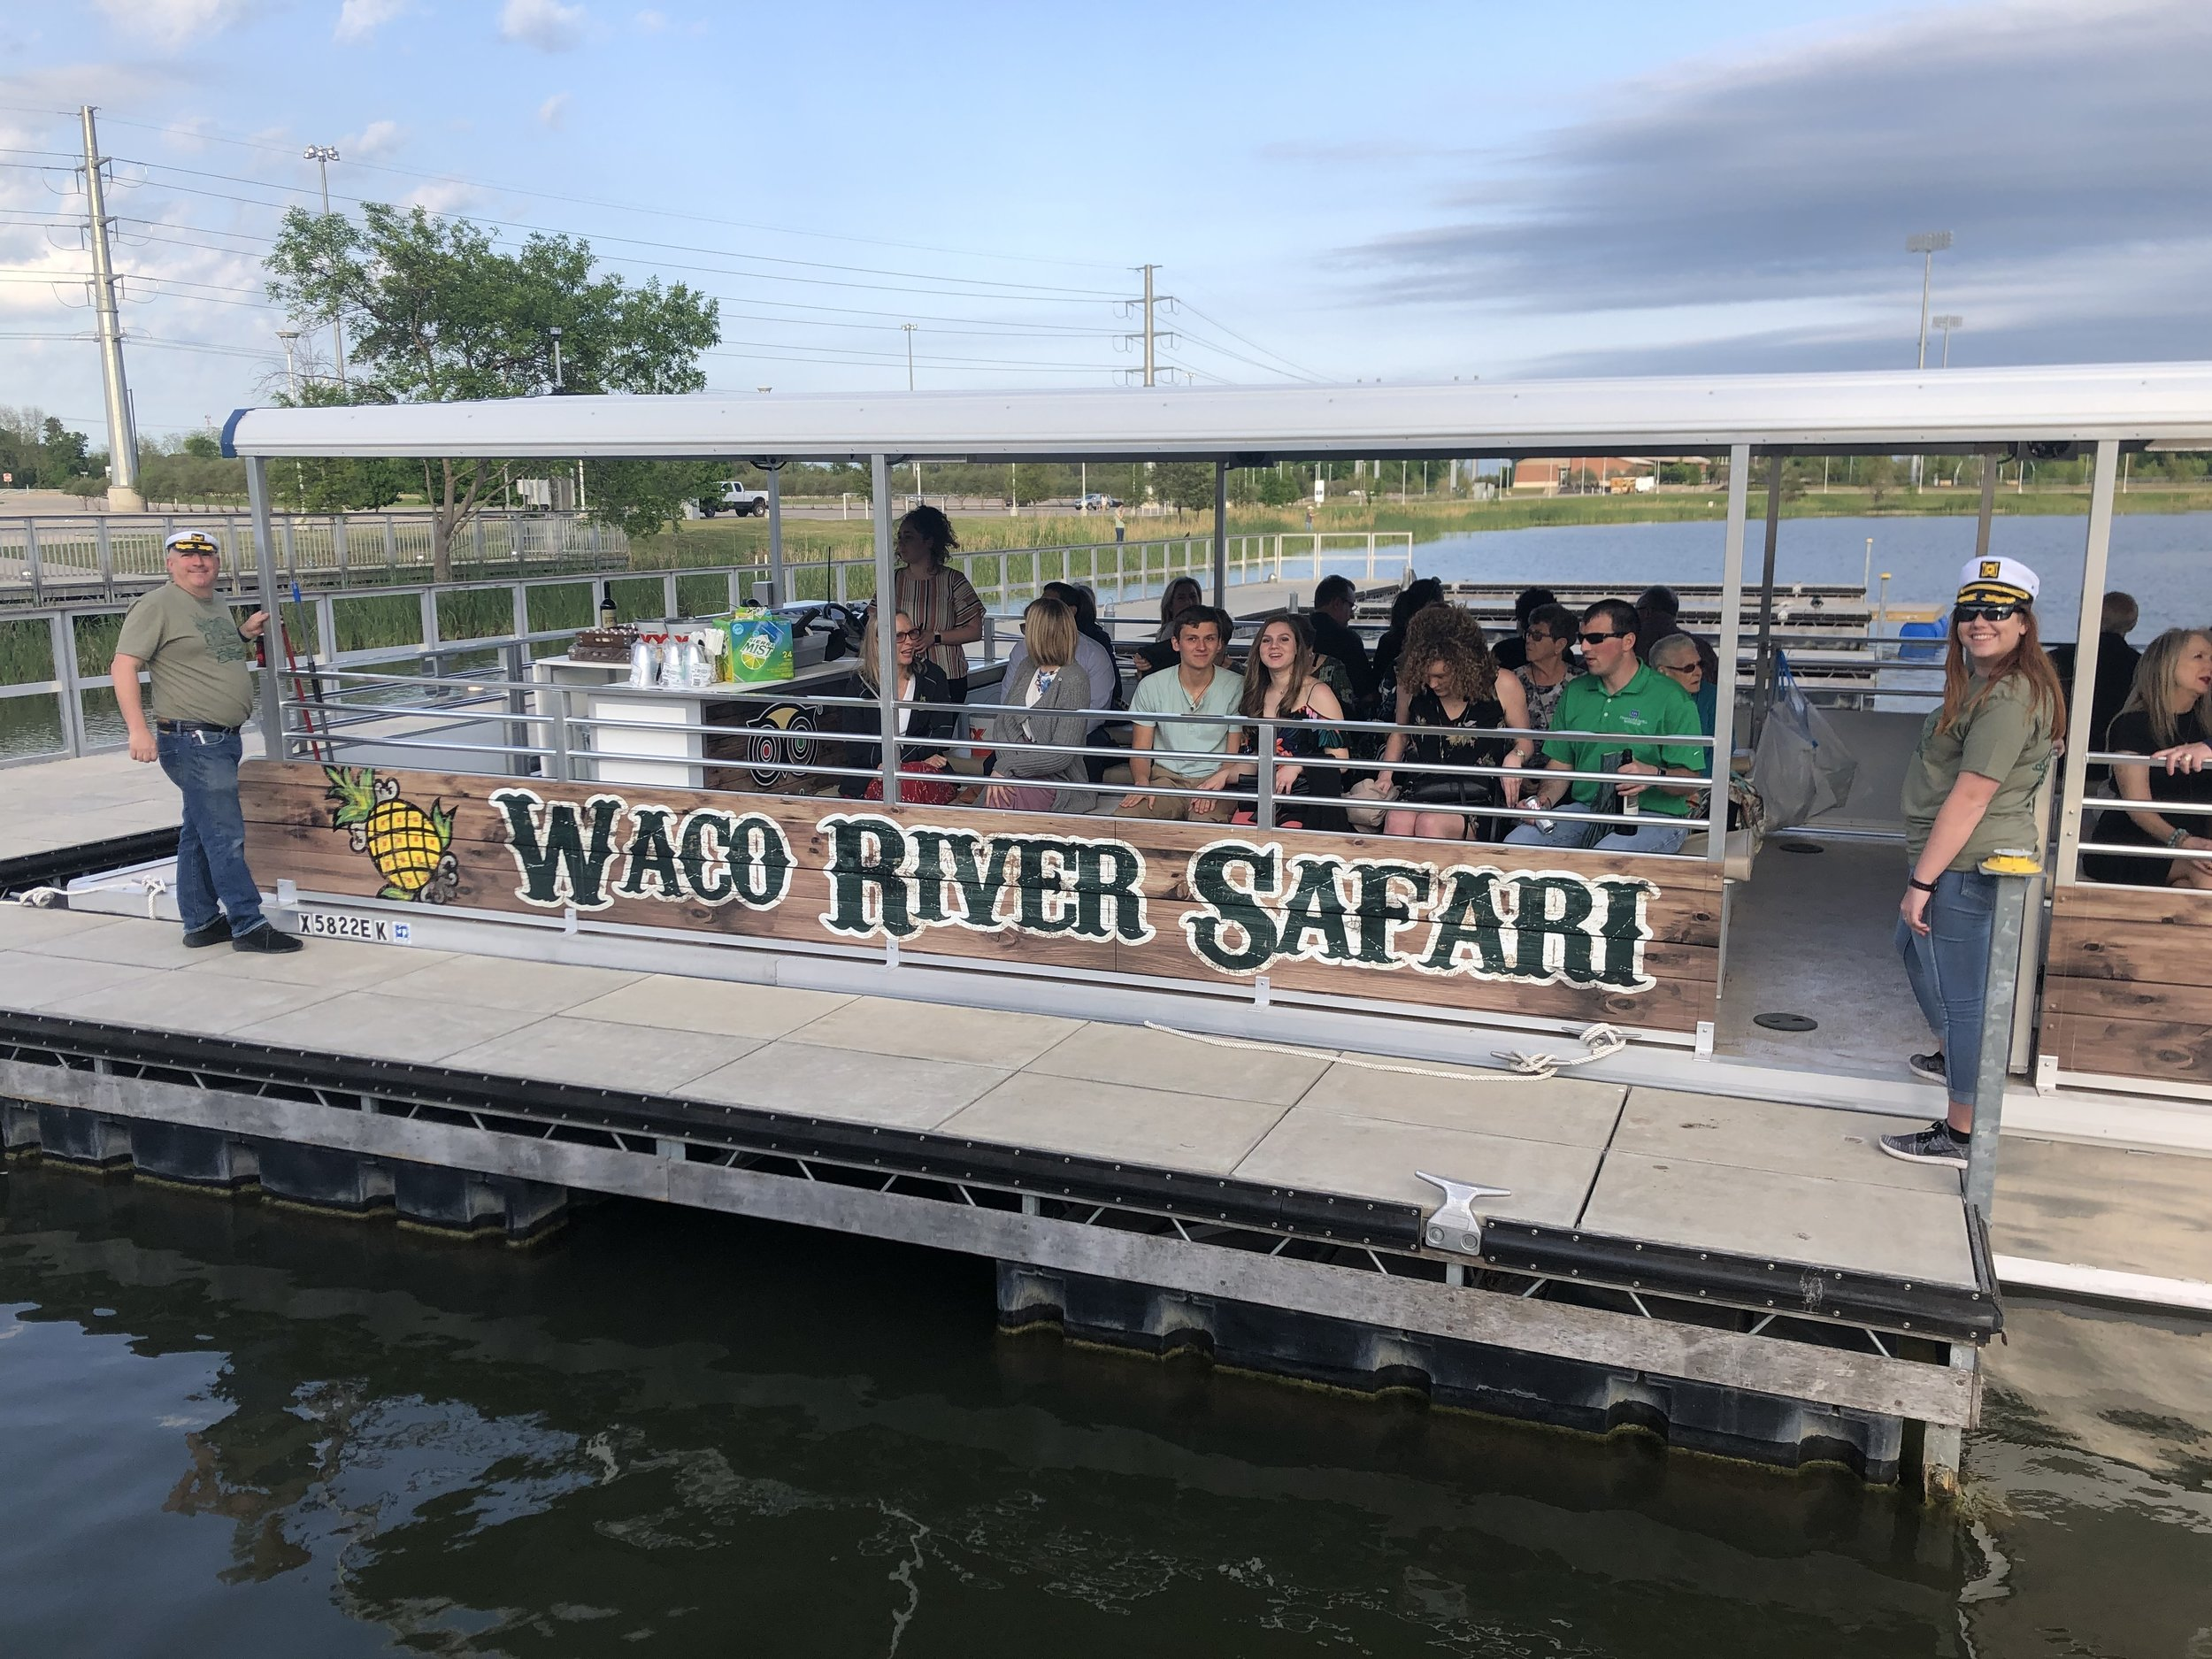 Waco River Safari